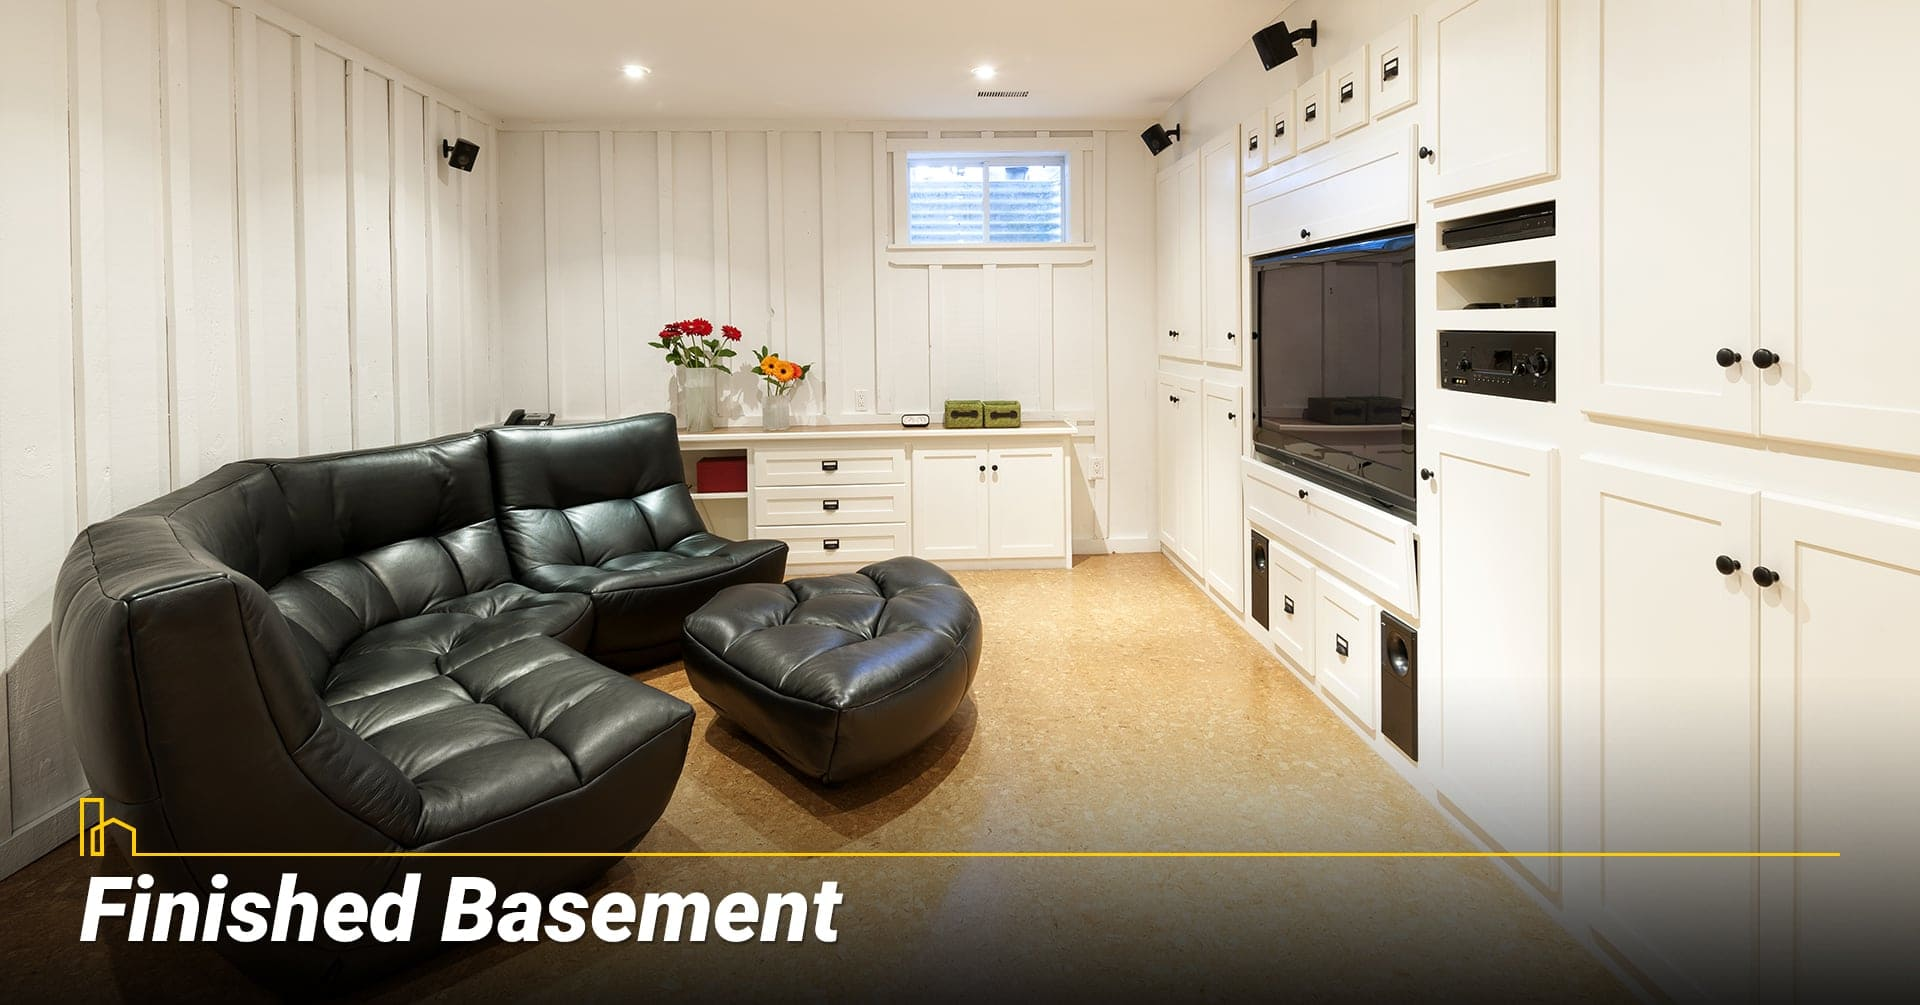 Finished Basement, finished and decorate your basement